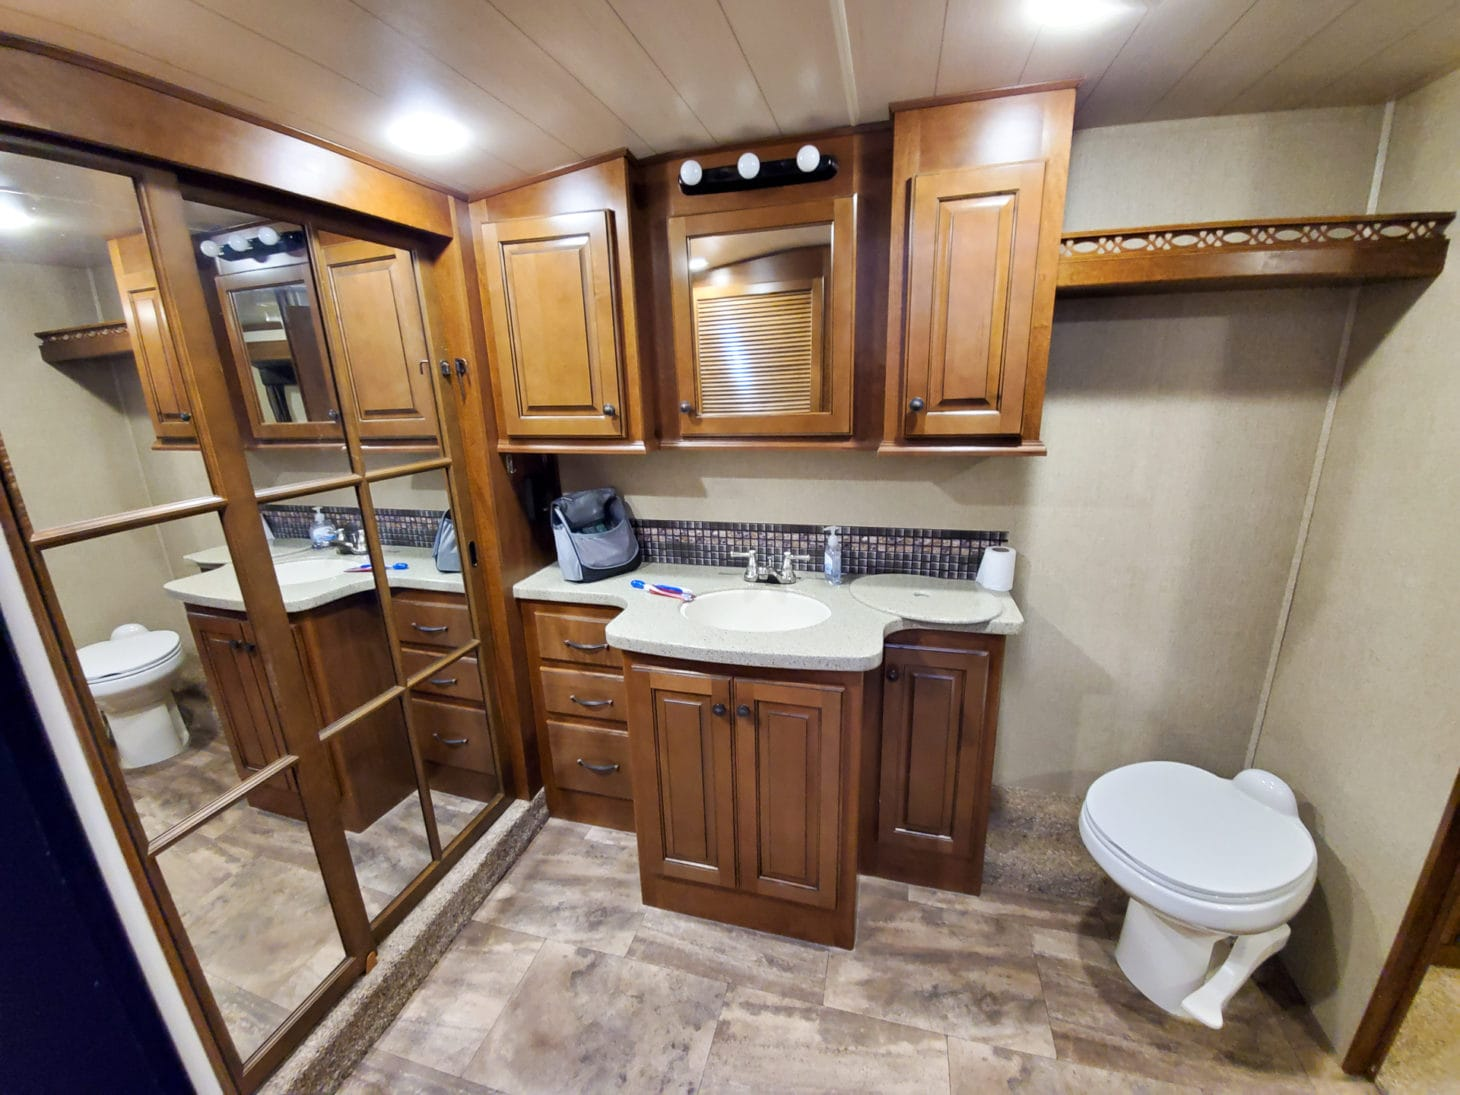 Interior of a large RV bathroom with lots of cabinet storage, sink, toilet, mirror, and shelving